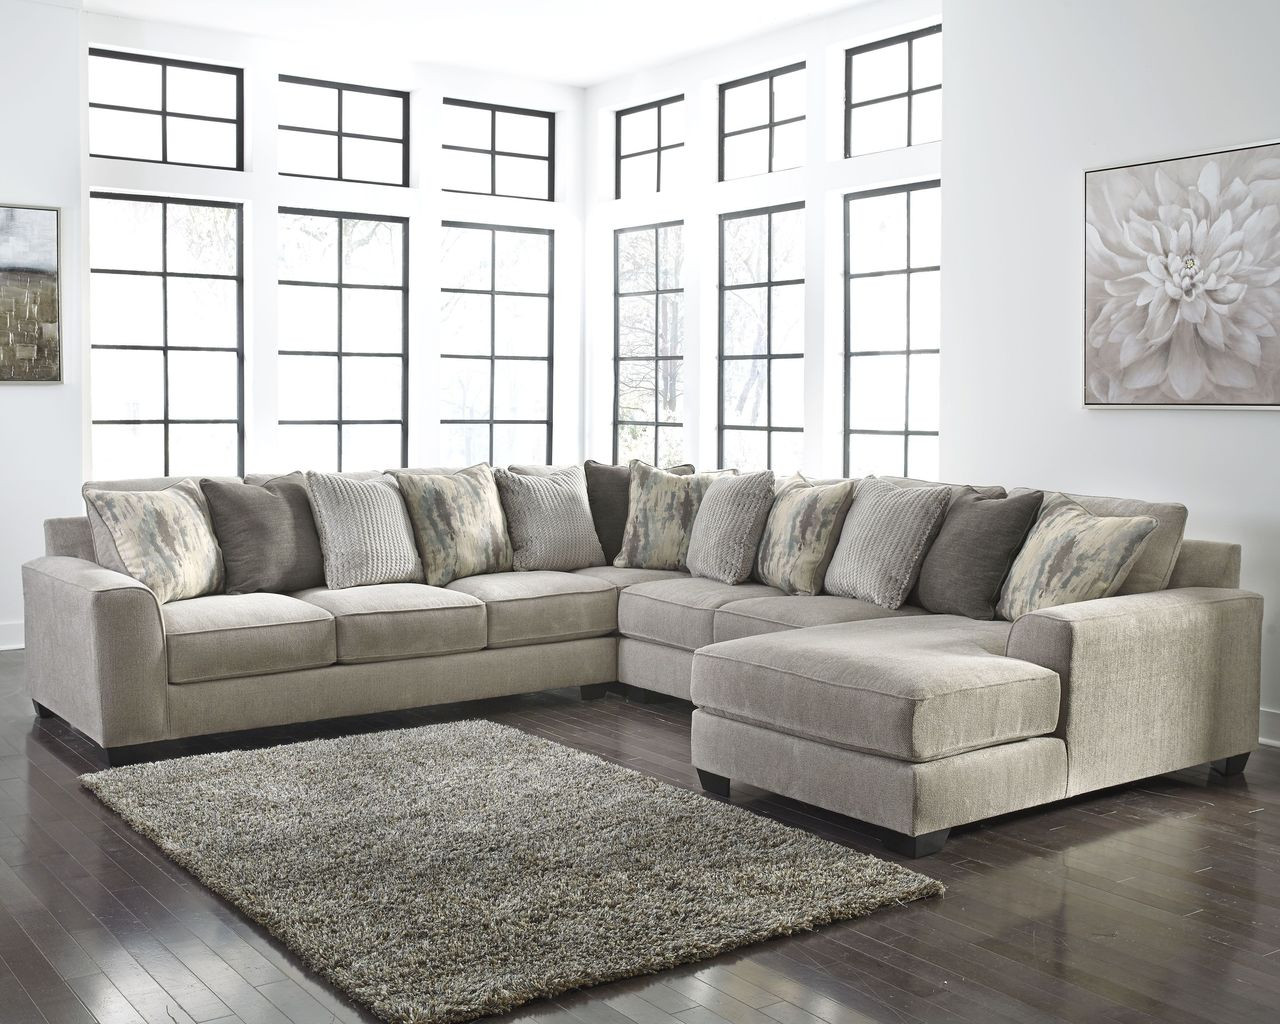 Outstanding Ardsley Pewter Laf Sofa Wedge Armless Loveseat Raf Corner Chaise Sectional Gmtry Best Dining Table And Chair Ideas Images Gmtryco